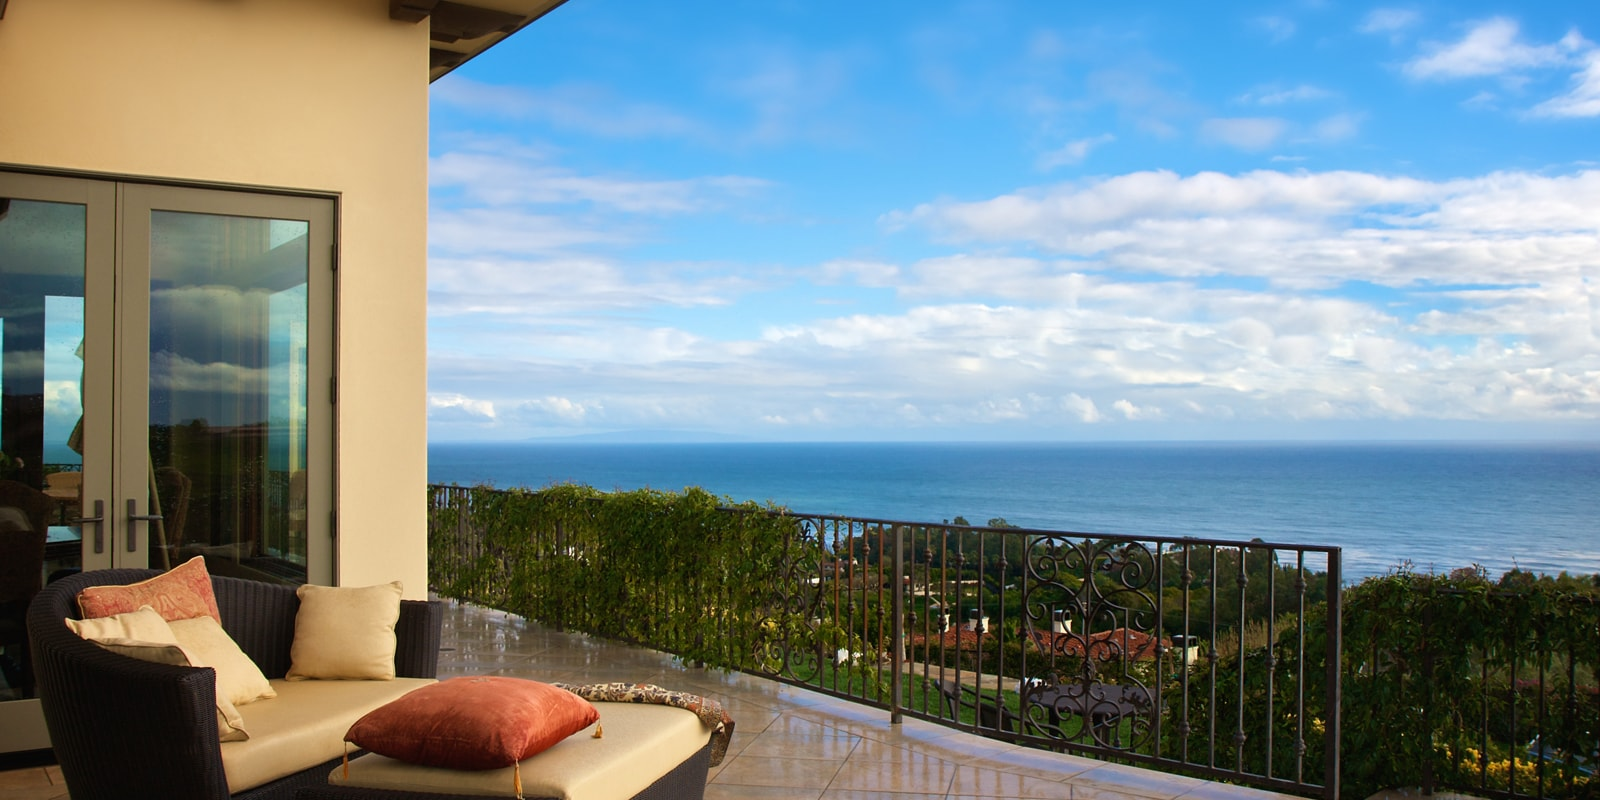 Pacific Palisades view in California